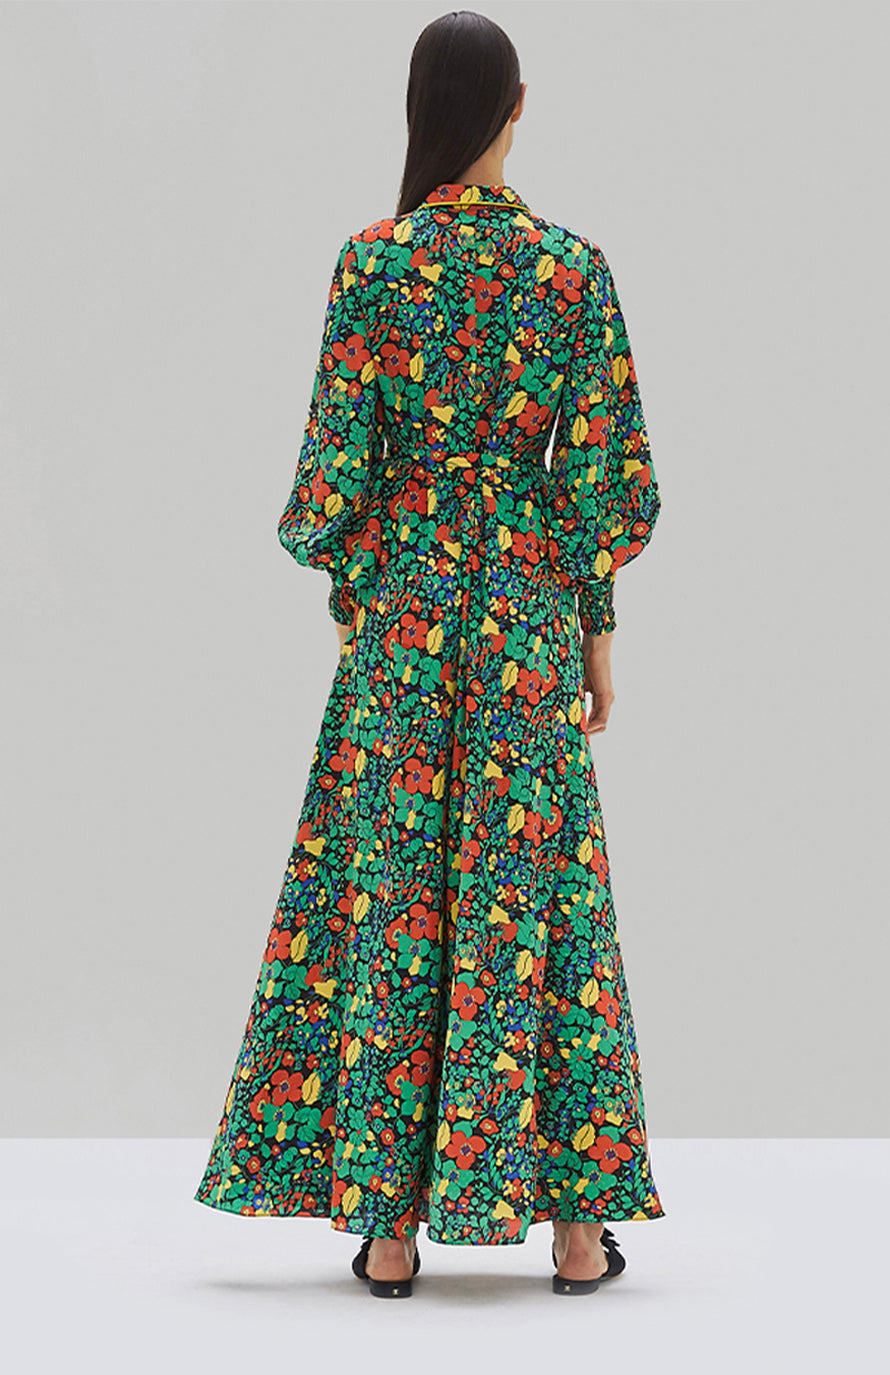 Alexis Hiroka Robe Botanical Mondrian - Rear View